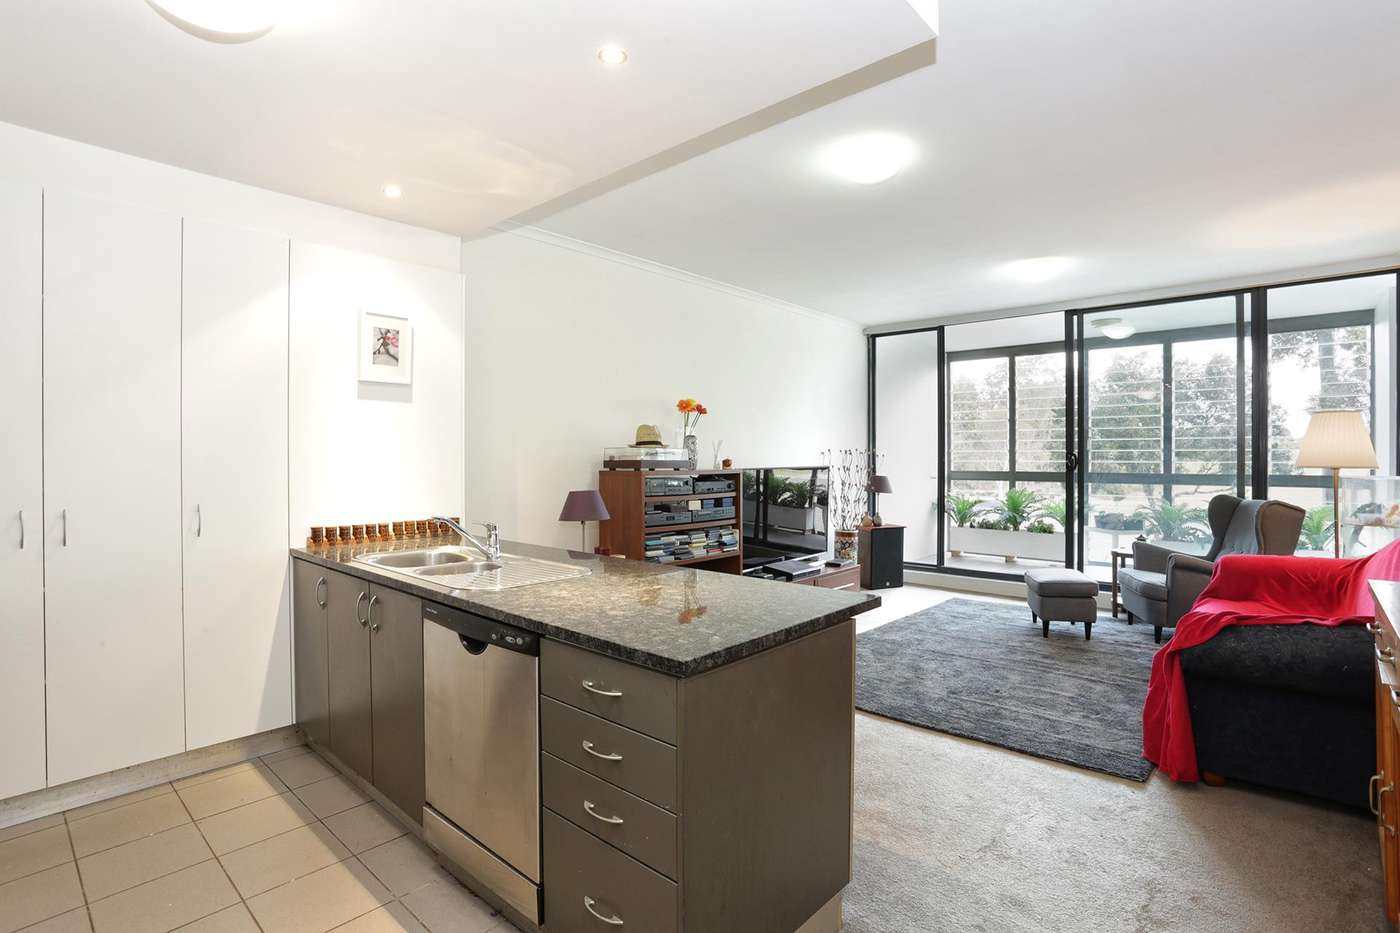 Main view of Homely unit listing, 453/221 Sydney Park Rd, Erskineville, NSW 2043